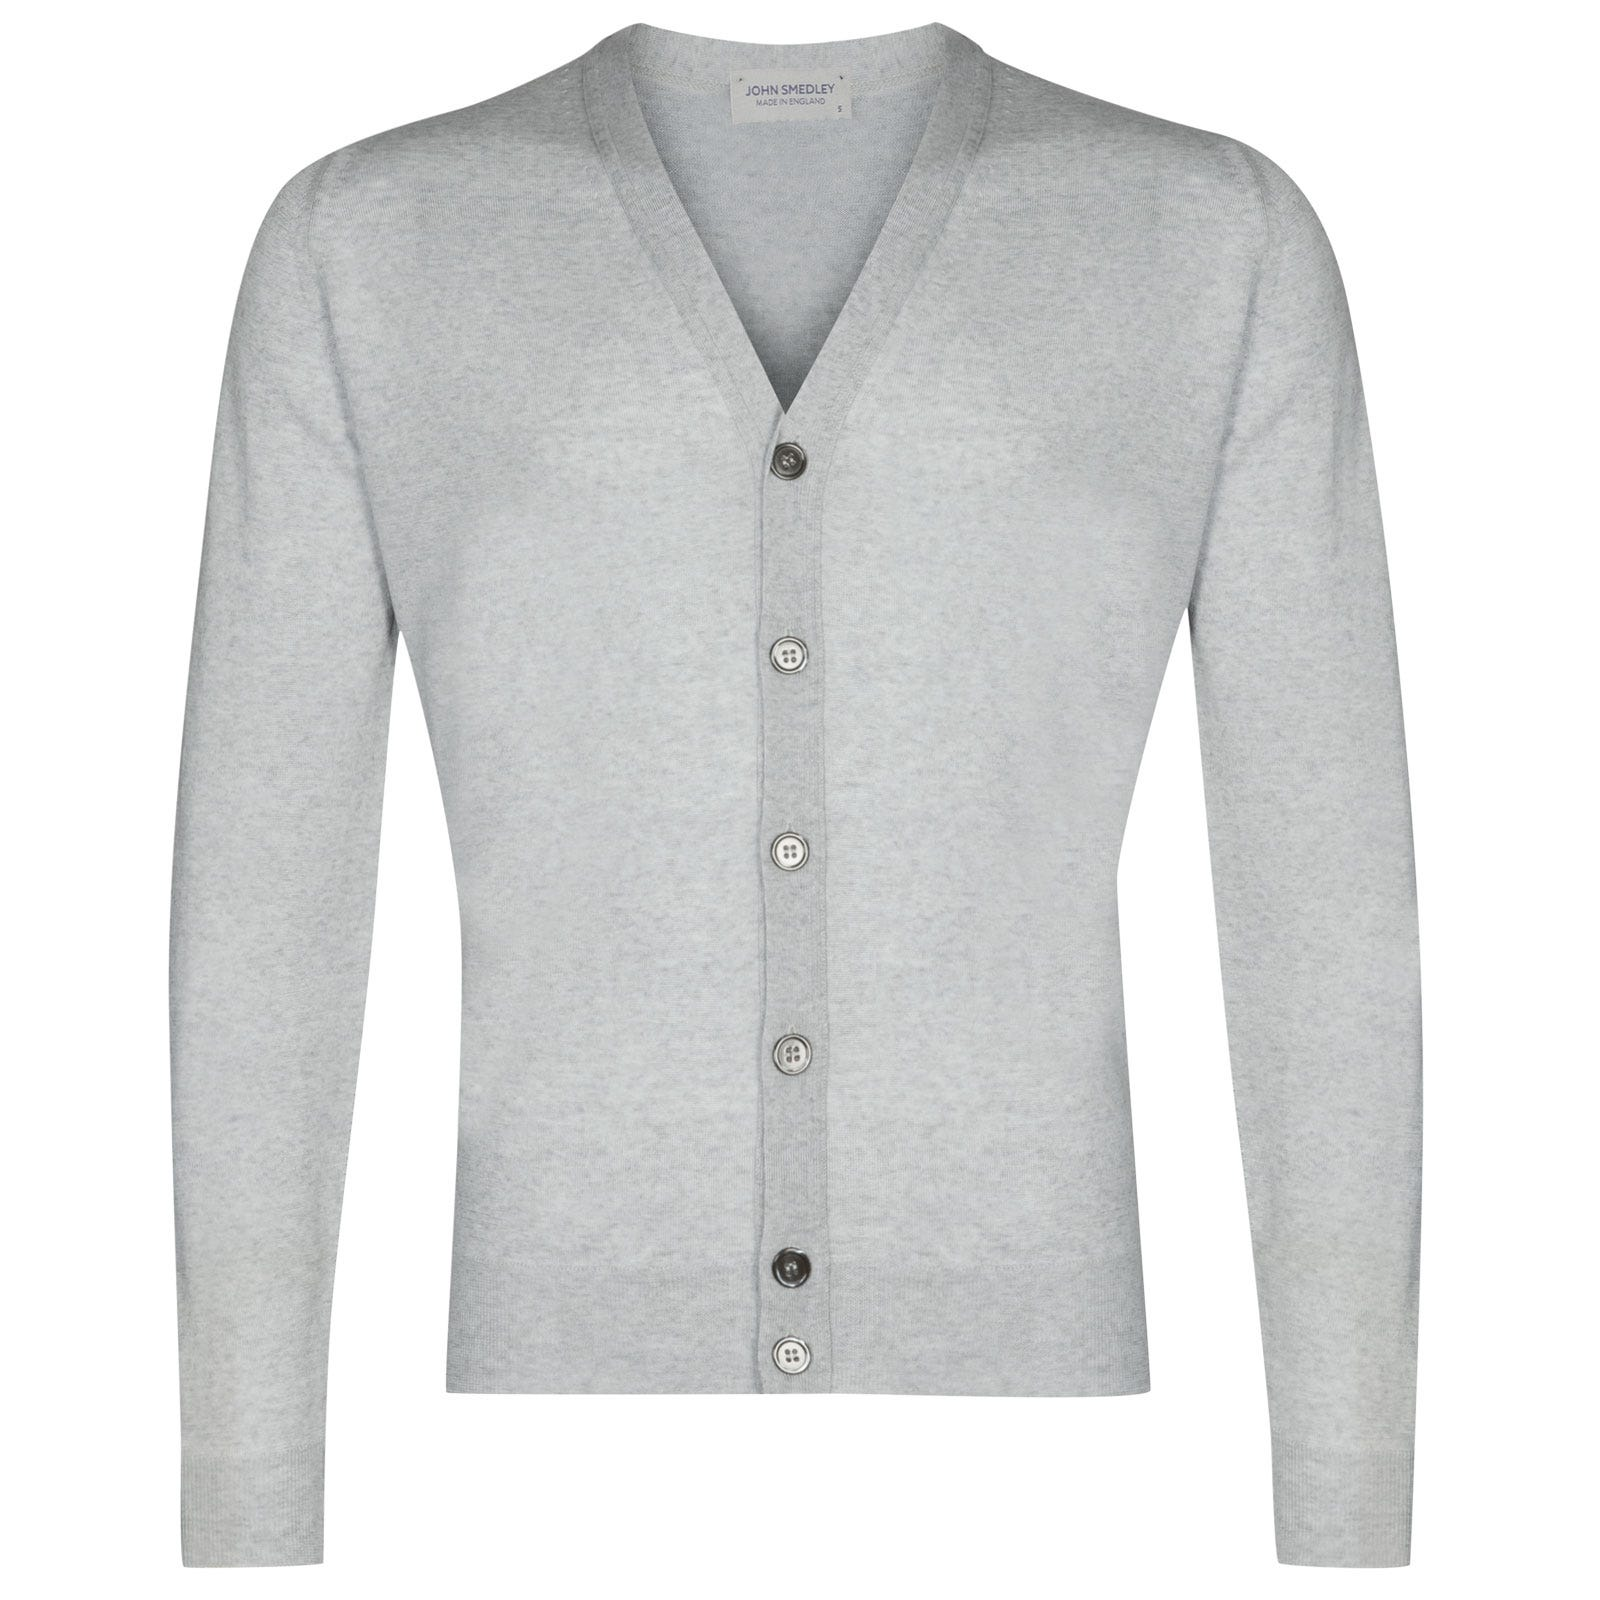 John Smedley naples Merino Wool Cardigan in Bardot Grey-M